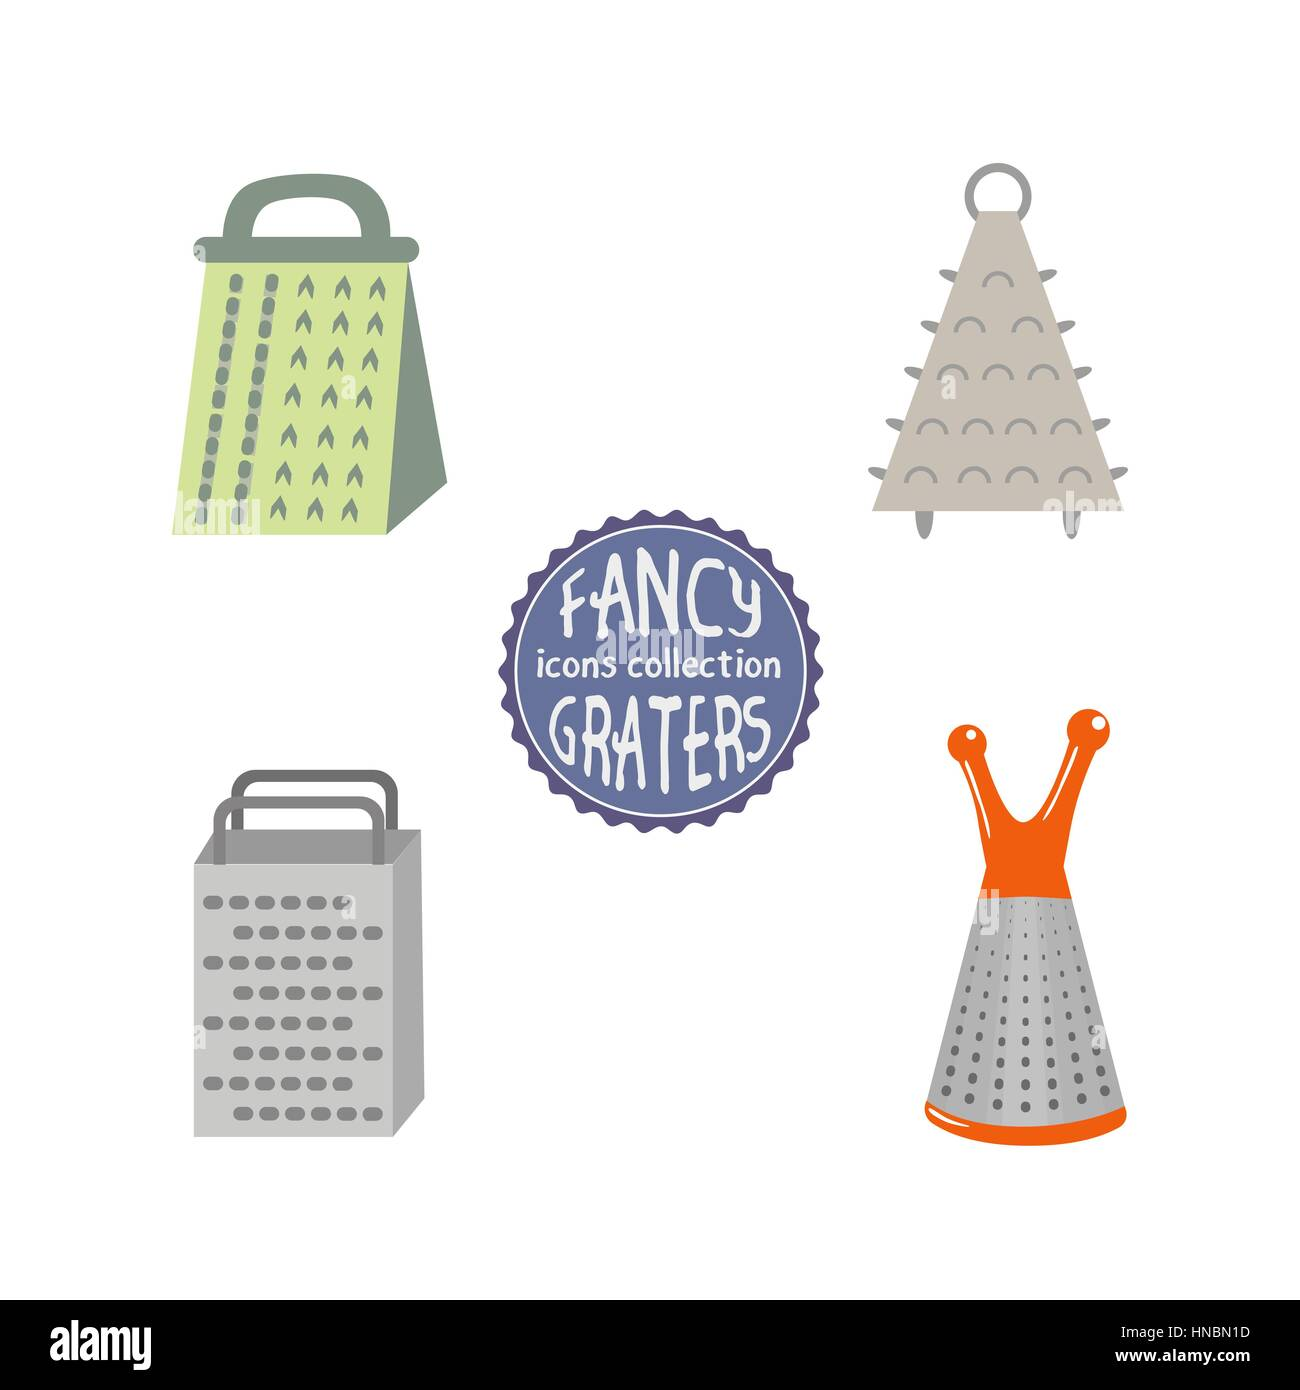 white cheese grater vector graphic stockfotos white cheese grater vector graphic bilder alamy. Black Bedroom Furniture Sets. Home Design Ideas